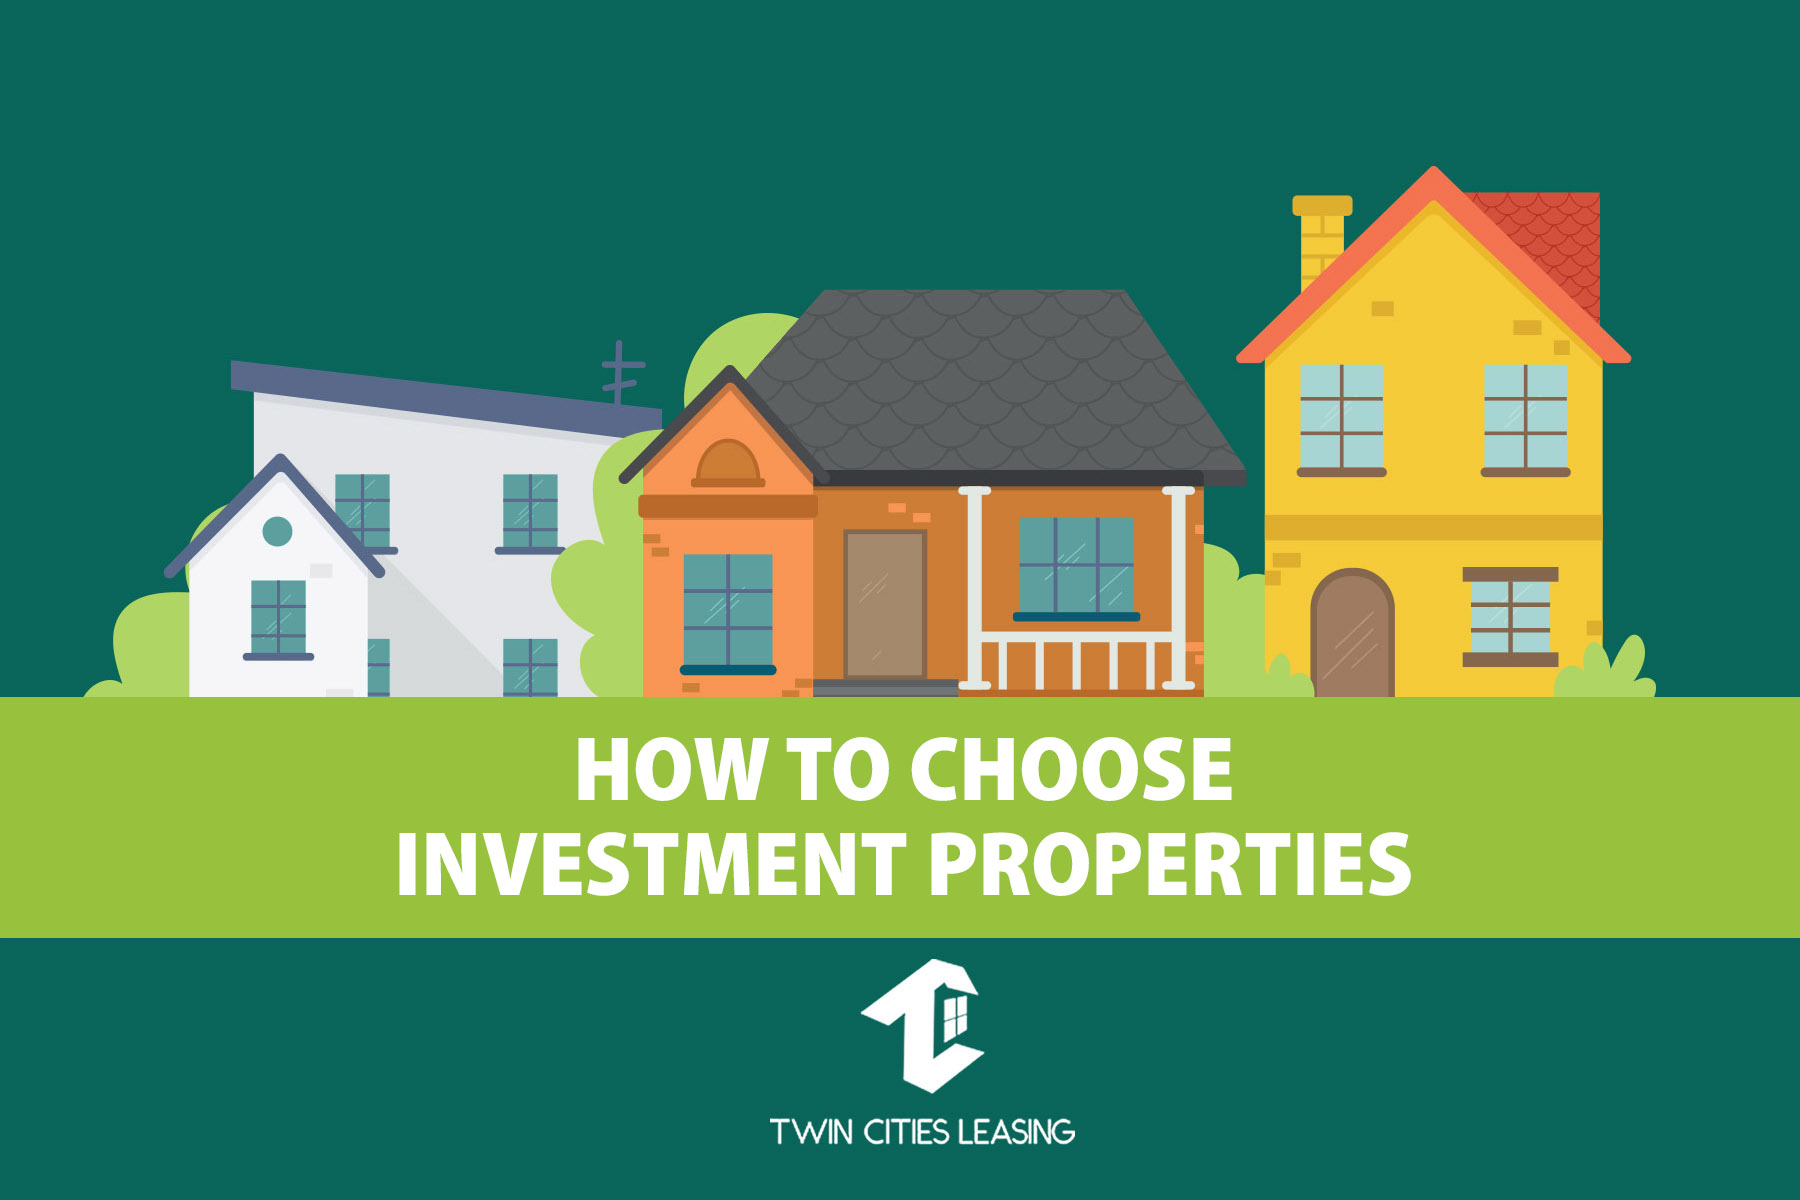 How to Choose Investment Properties